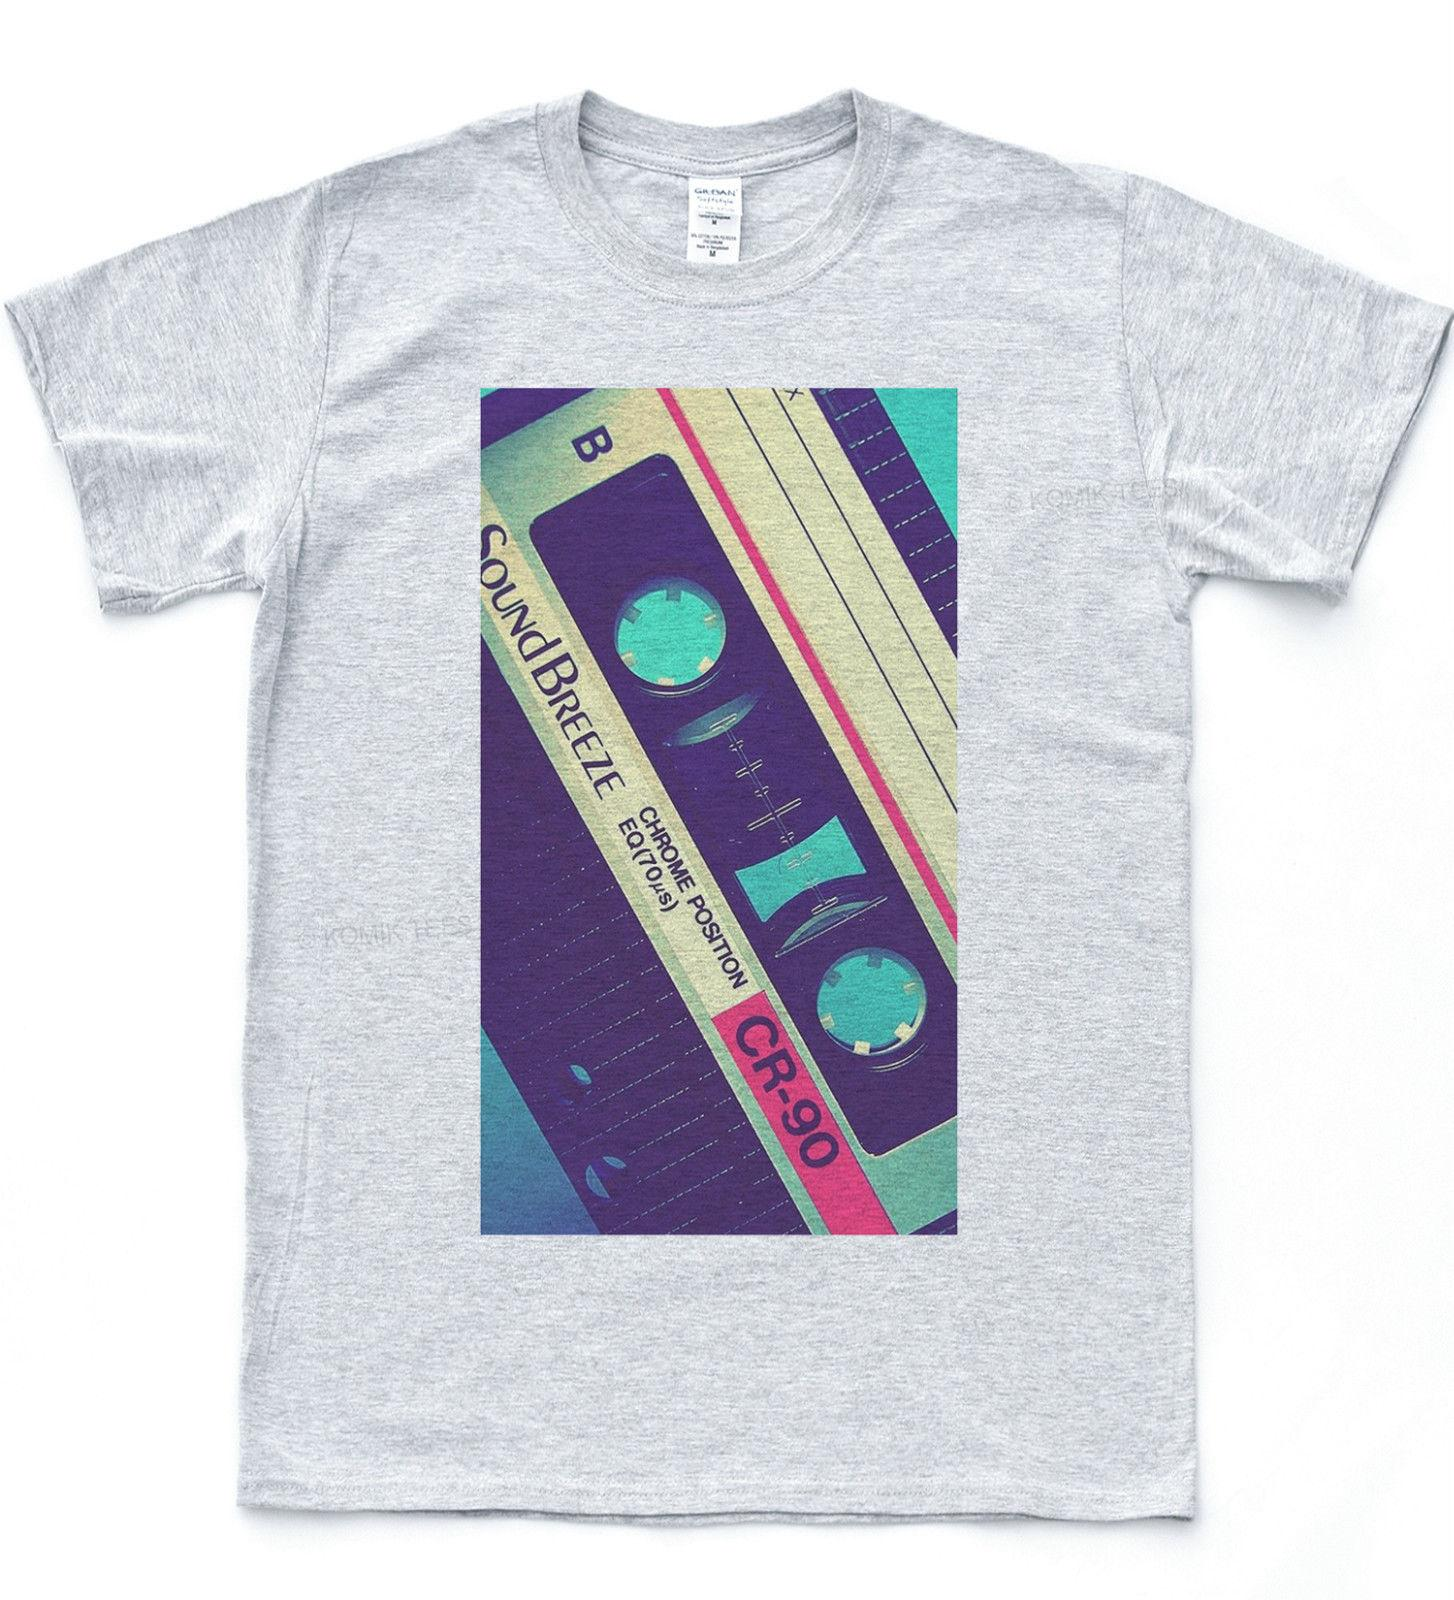 0bbd55a2086 Retro Cassette T Shirt Pop Illustration Vintage Tape Tee Indie Hipster Top  Funny Unisex Casual Retro Tees Weird T Shirts From Vectorbombb